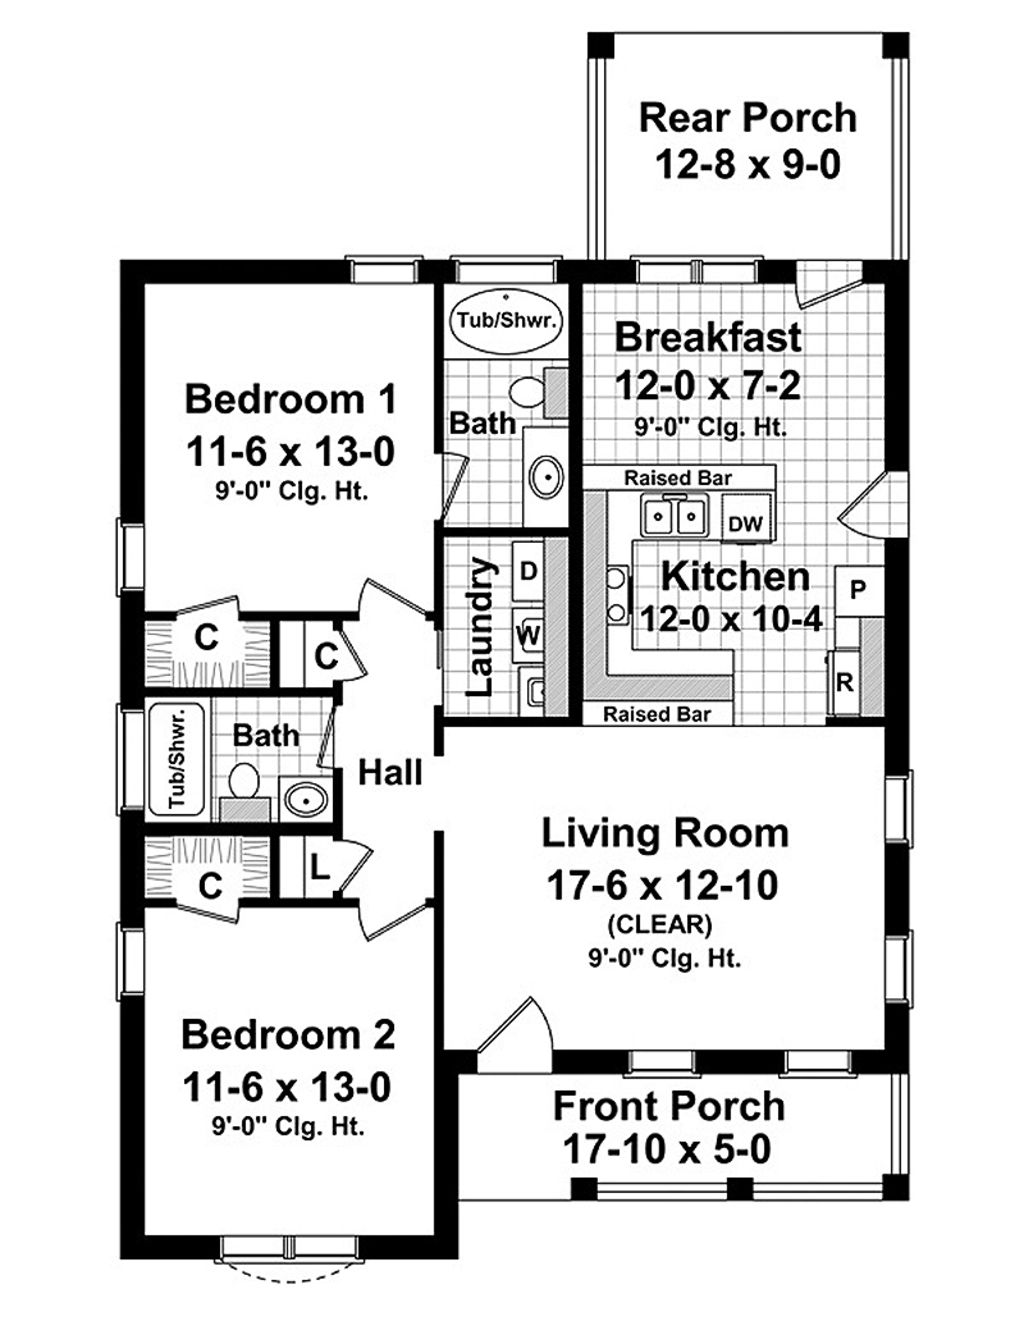 Cottage style house plan 2 beds baths 1100 sq ft for Kitchen design 6 x 8